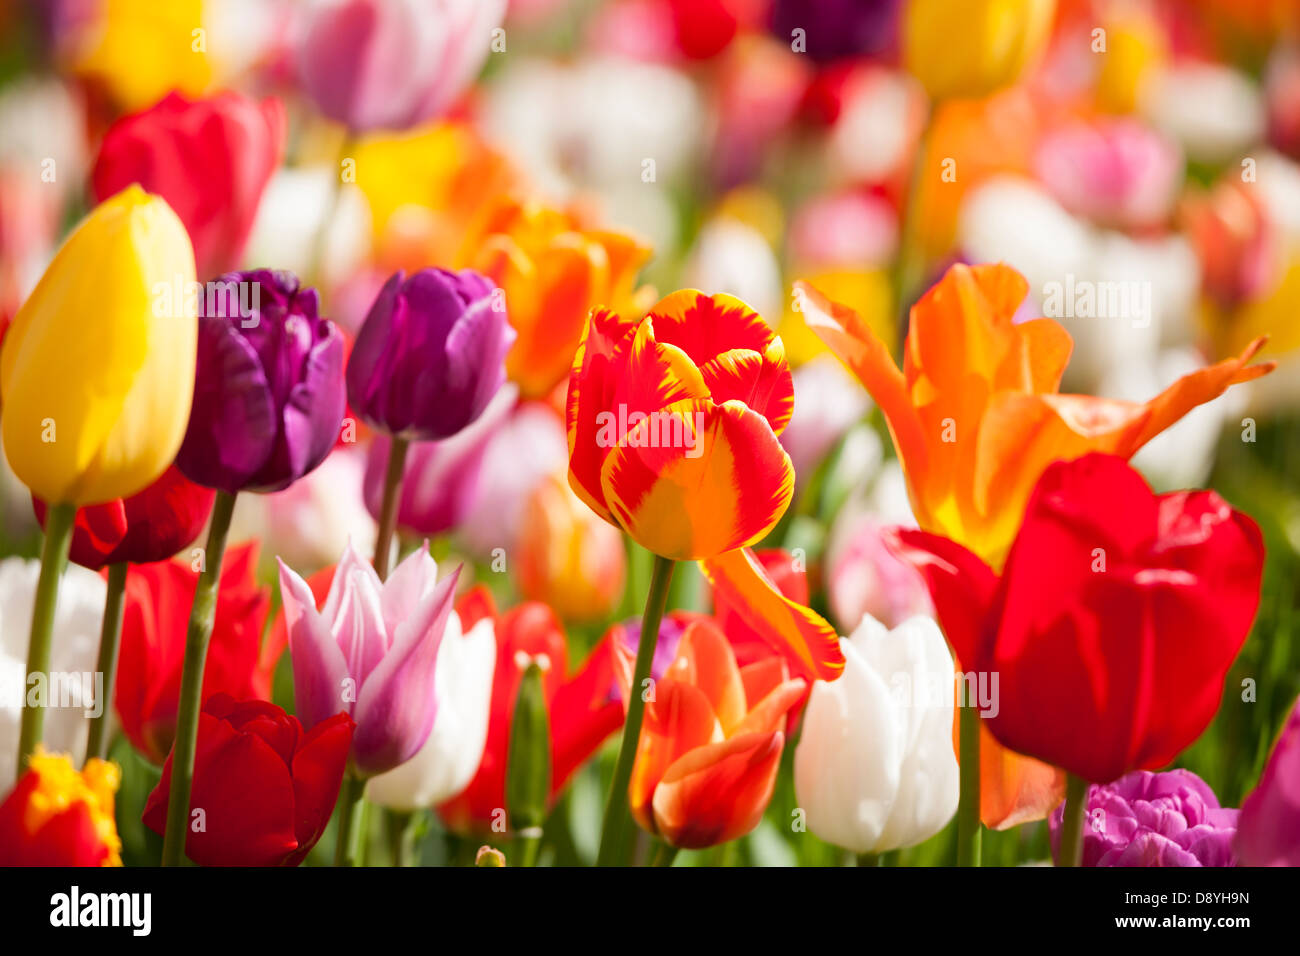 https://c7.alamy.com/comp/D8YH9N/tulips-close-up-of-mix-many-different-multi-colored-coloured-dutch-D8YH9N.jpg